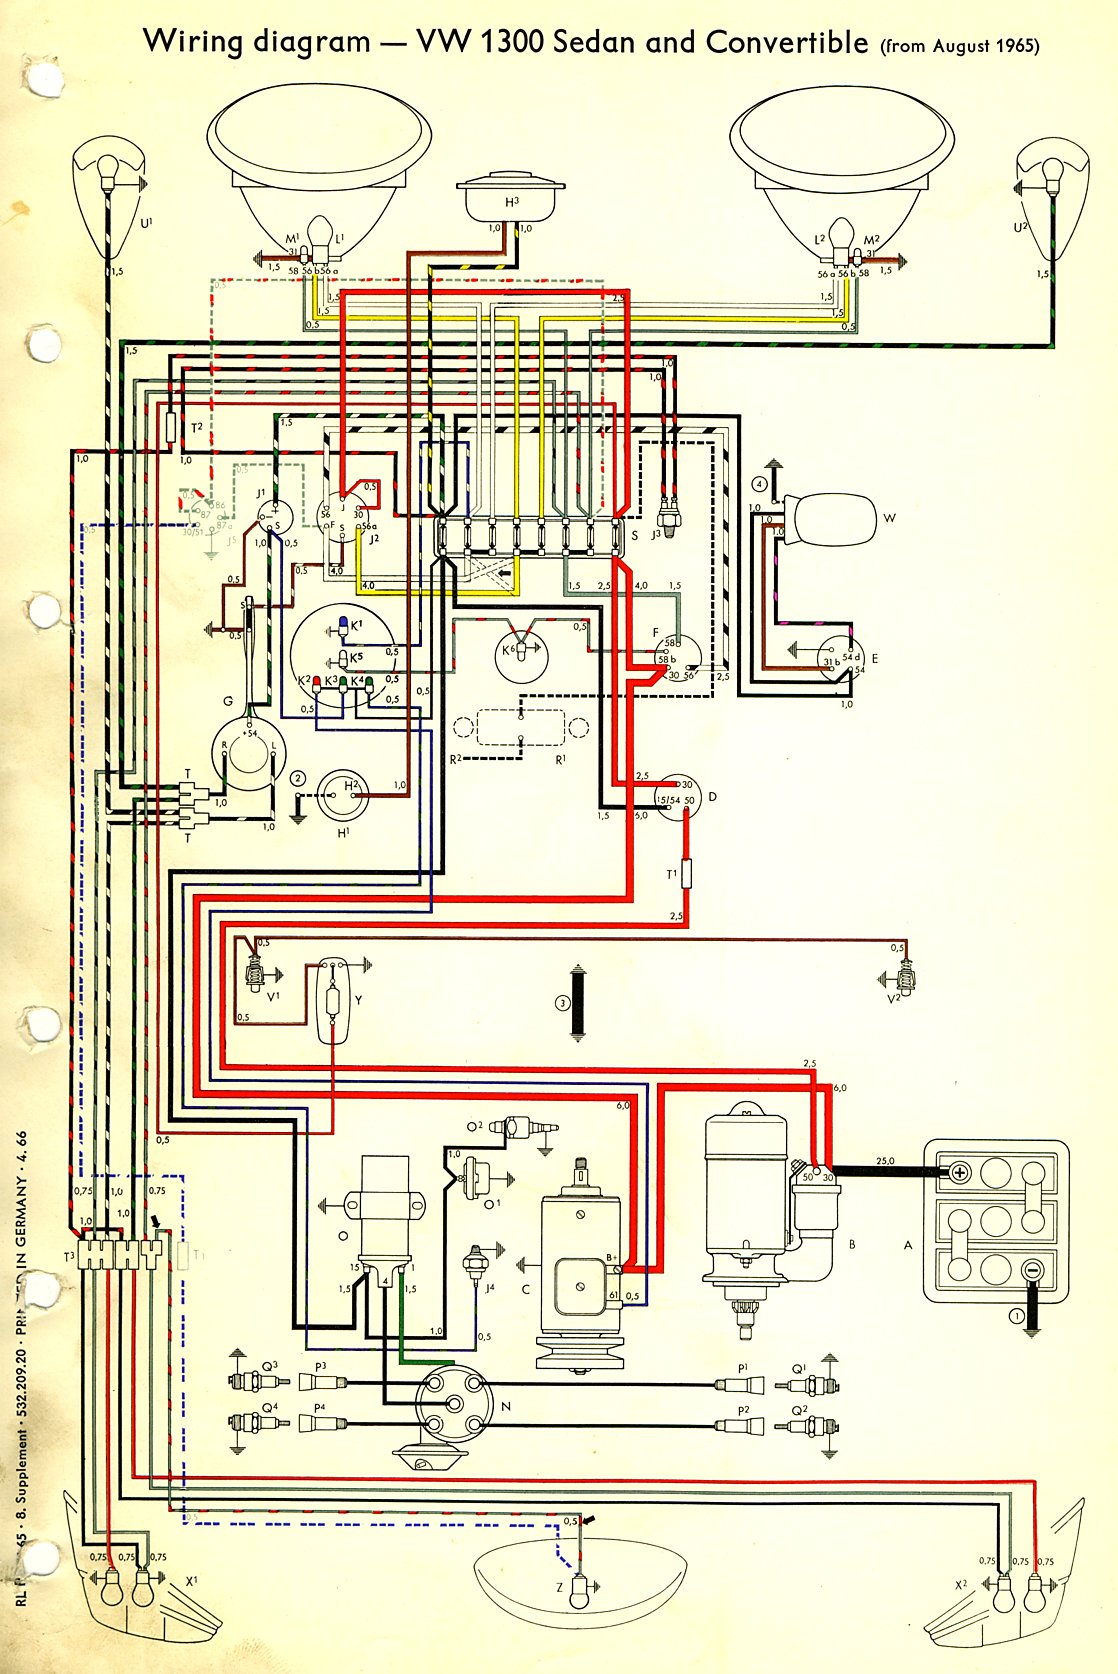 [SCHEMATICS_43NM]  TheSamba.com :: Type 1 Wiring Diagrams | 1966 Corvette Wiring Diagram Pdf |  | The Samba